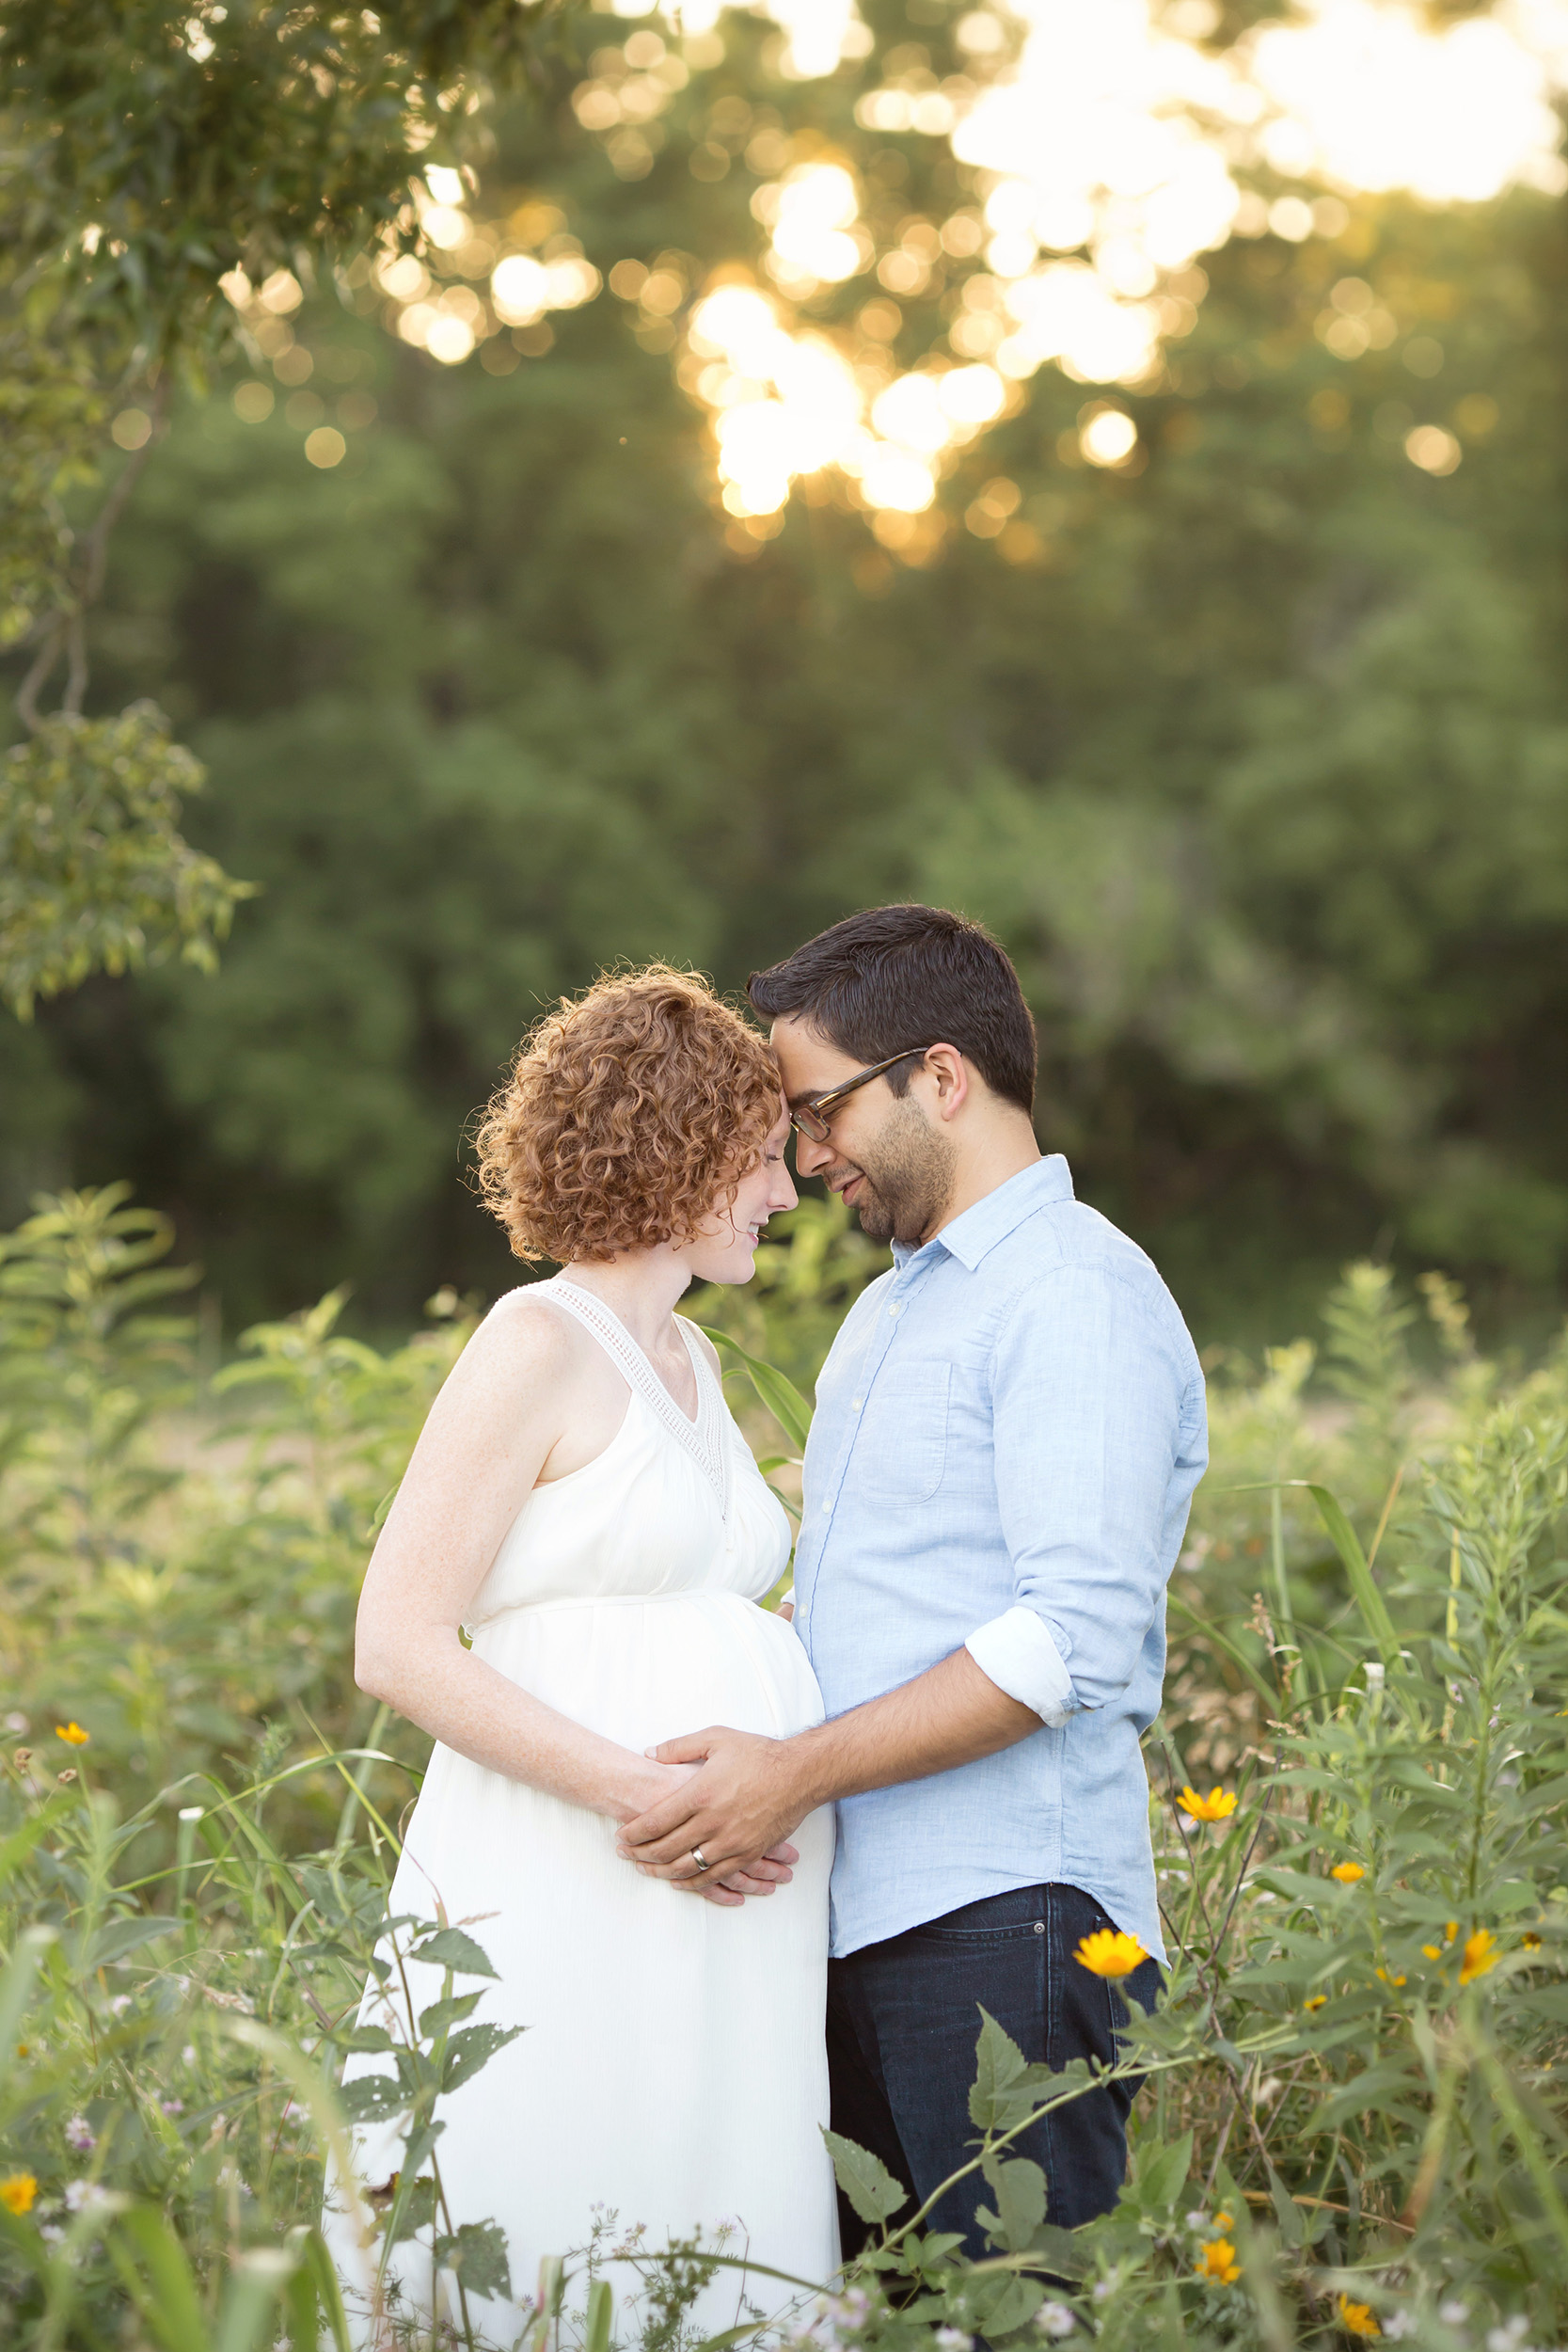 louisville ky maternity | julie brock photography | louisville ky newborn photographer | field maternity session husband and wife